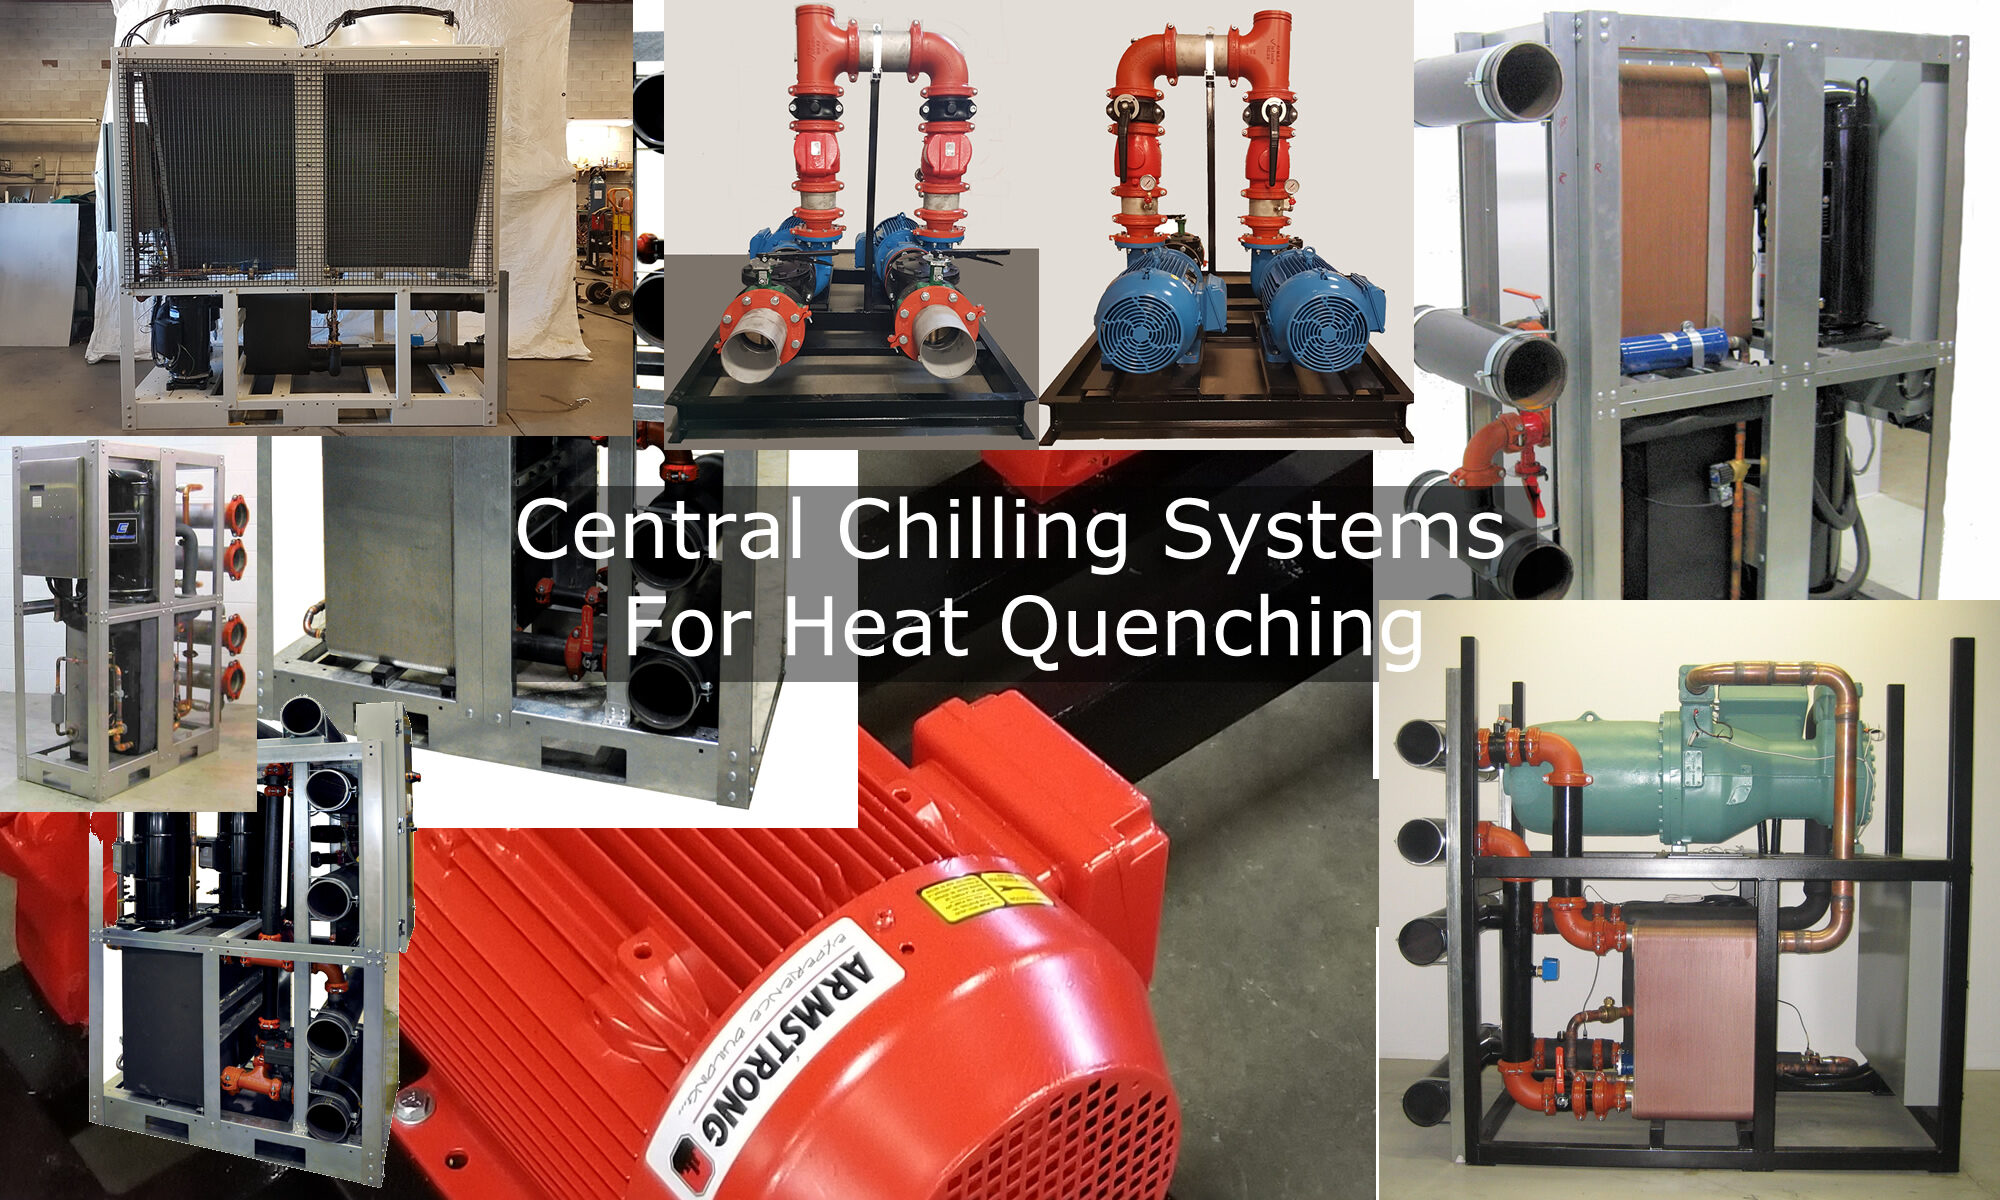 Heat Quenching Chillers